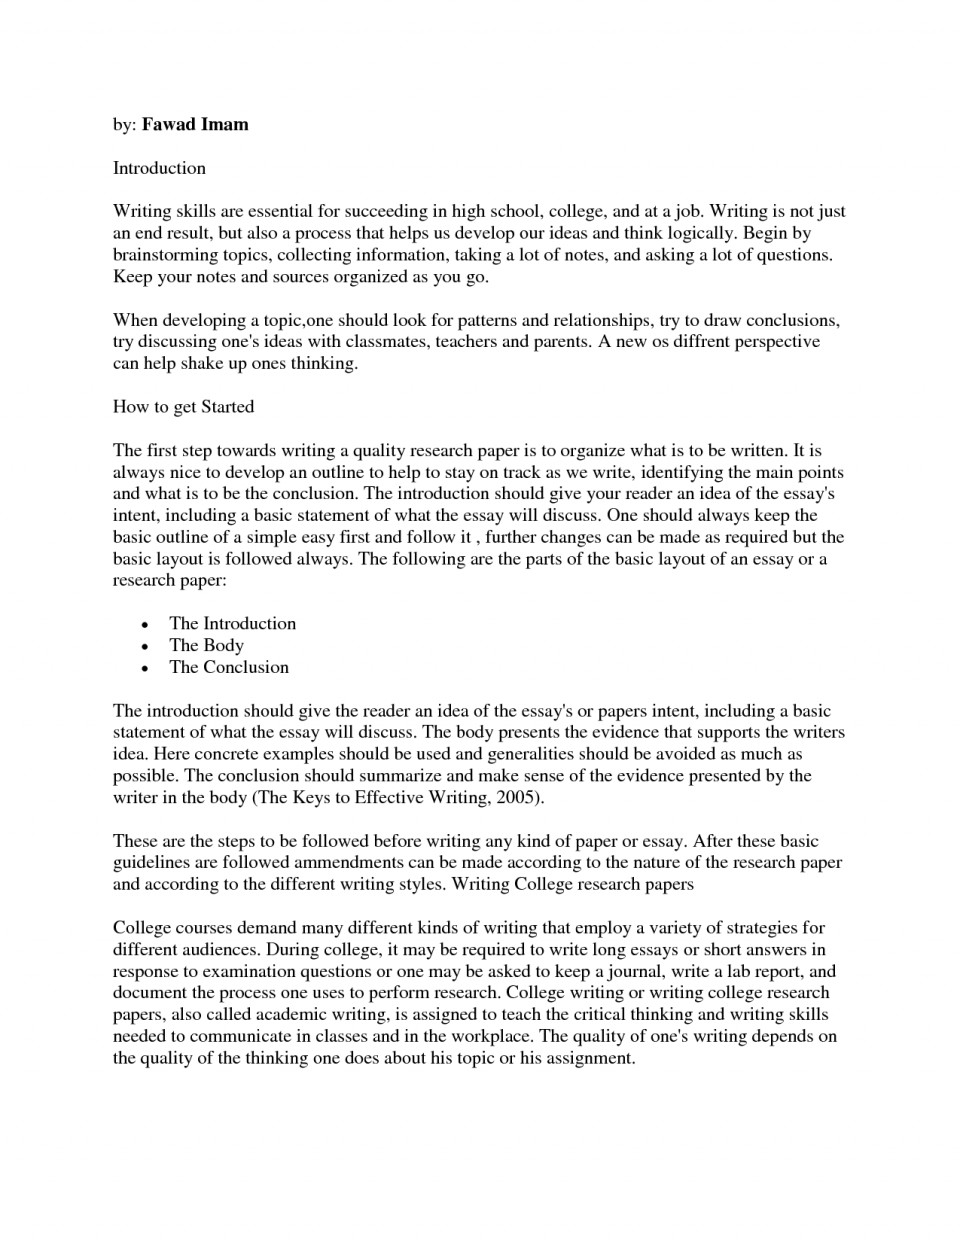 006 How To Write Research Papers Paper Outstanding A Proposal Or Thesis In Apa Format Introduction Pdf 960